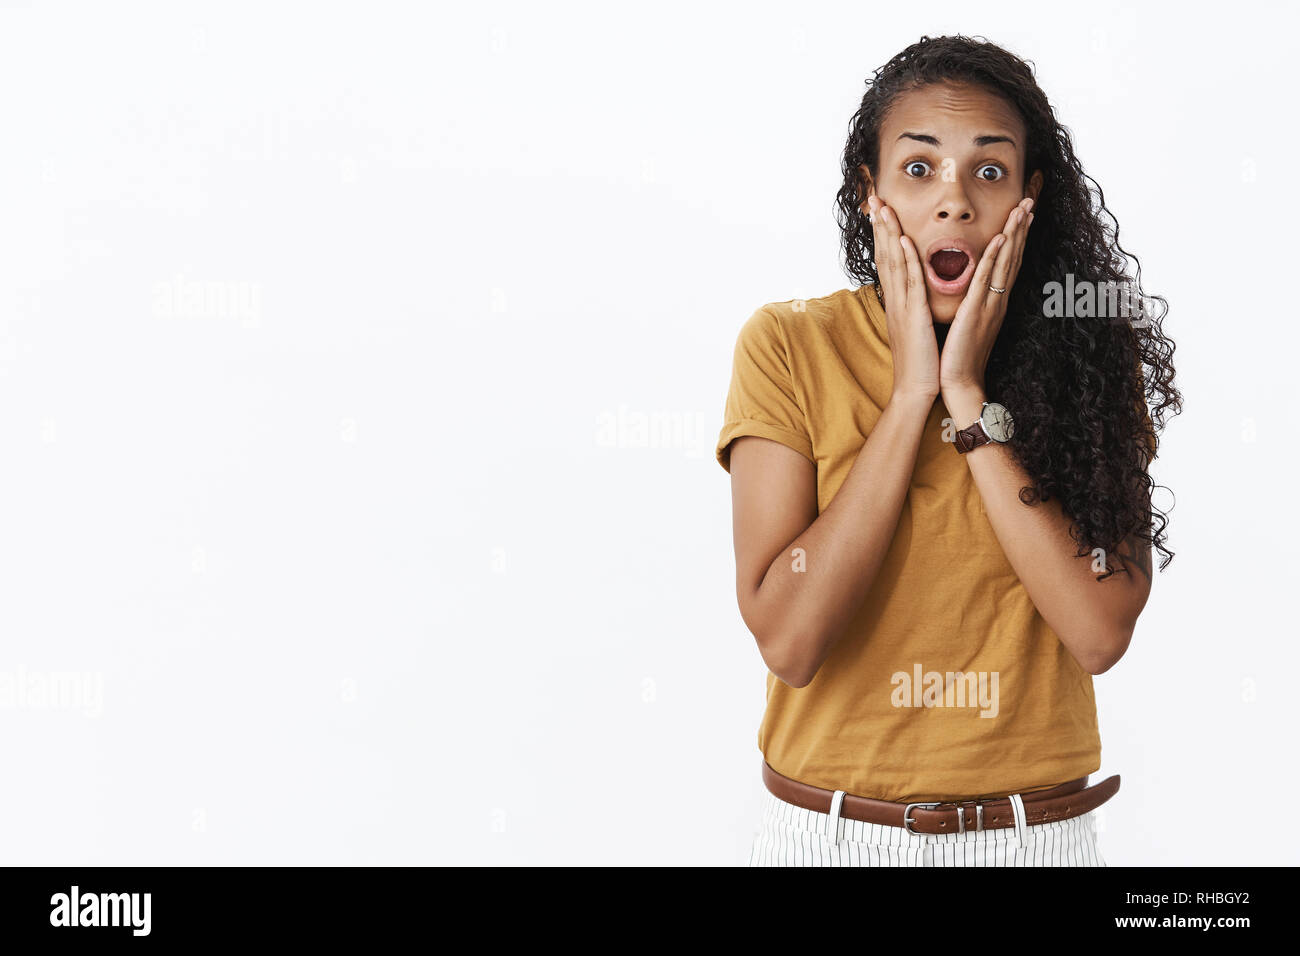 Surprised african american girl grabbing face with hands dropping jaw as being astonished by unexpected things happen gasping amazed popping eyes at - Stock Image